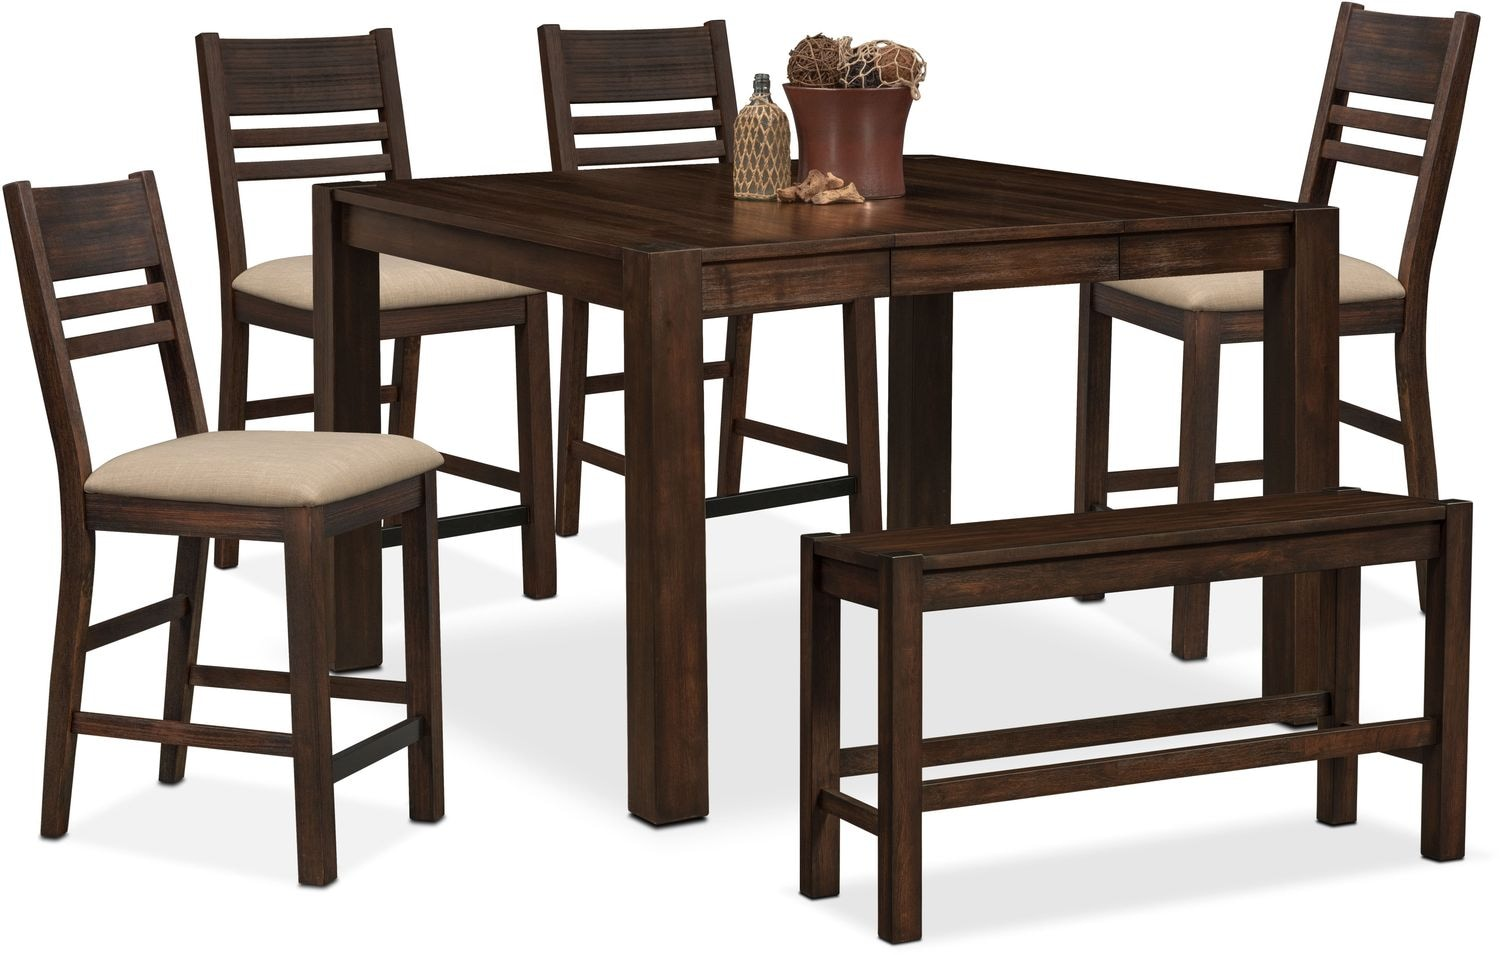 Tribeca Counter-Height Table, 4 Side Chairs and Bench - Tobacco